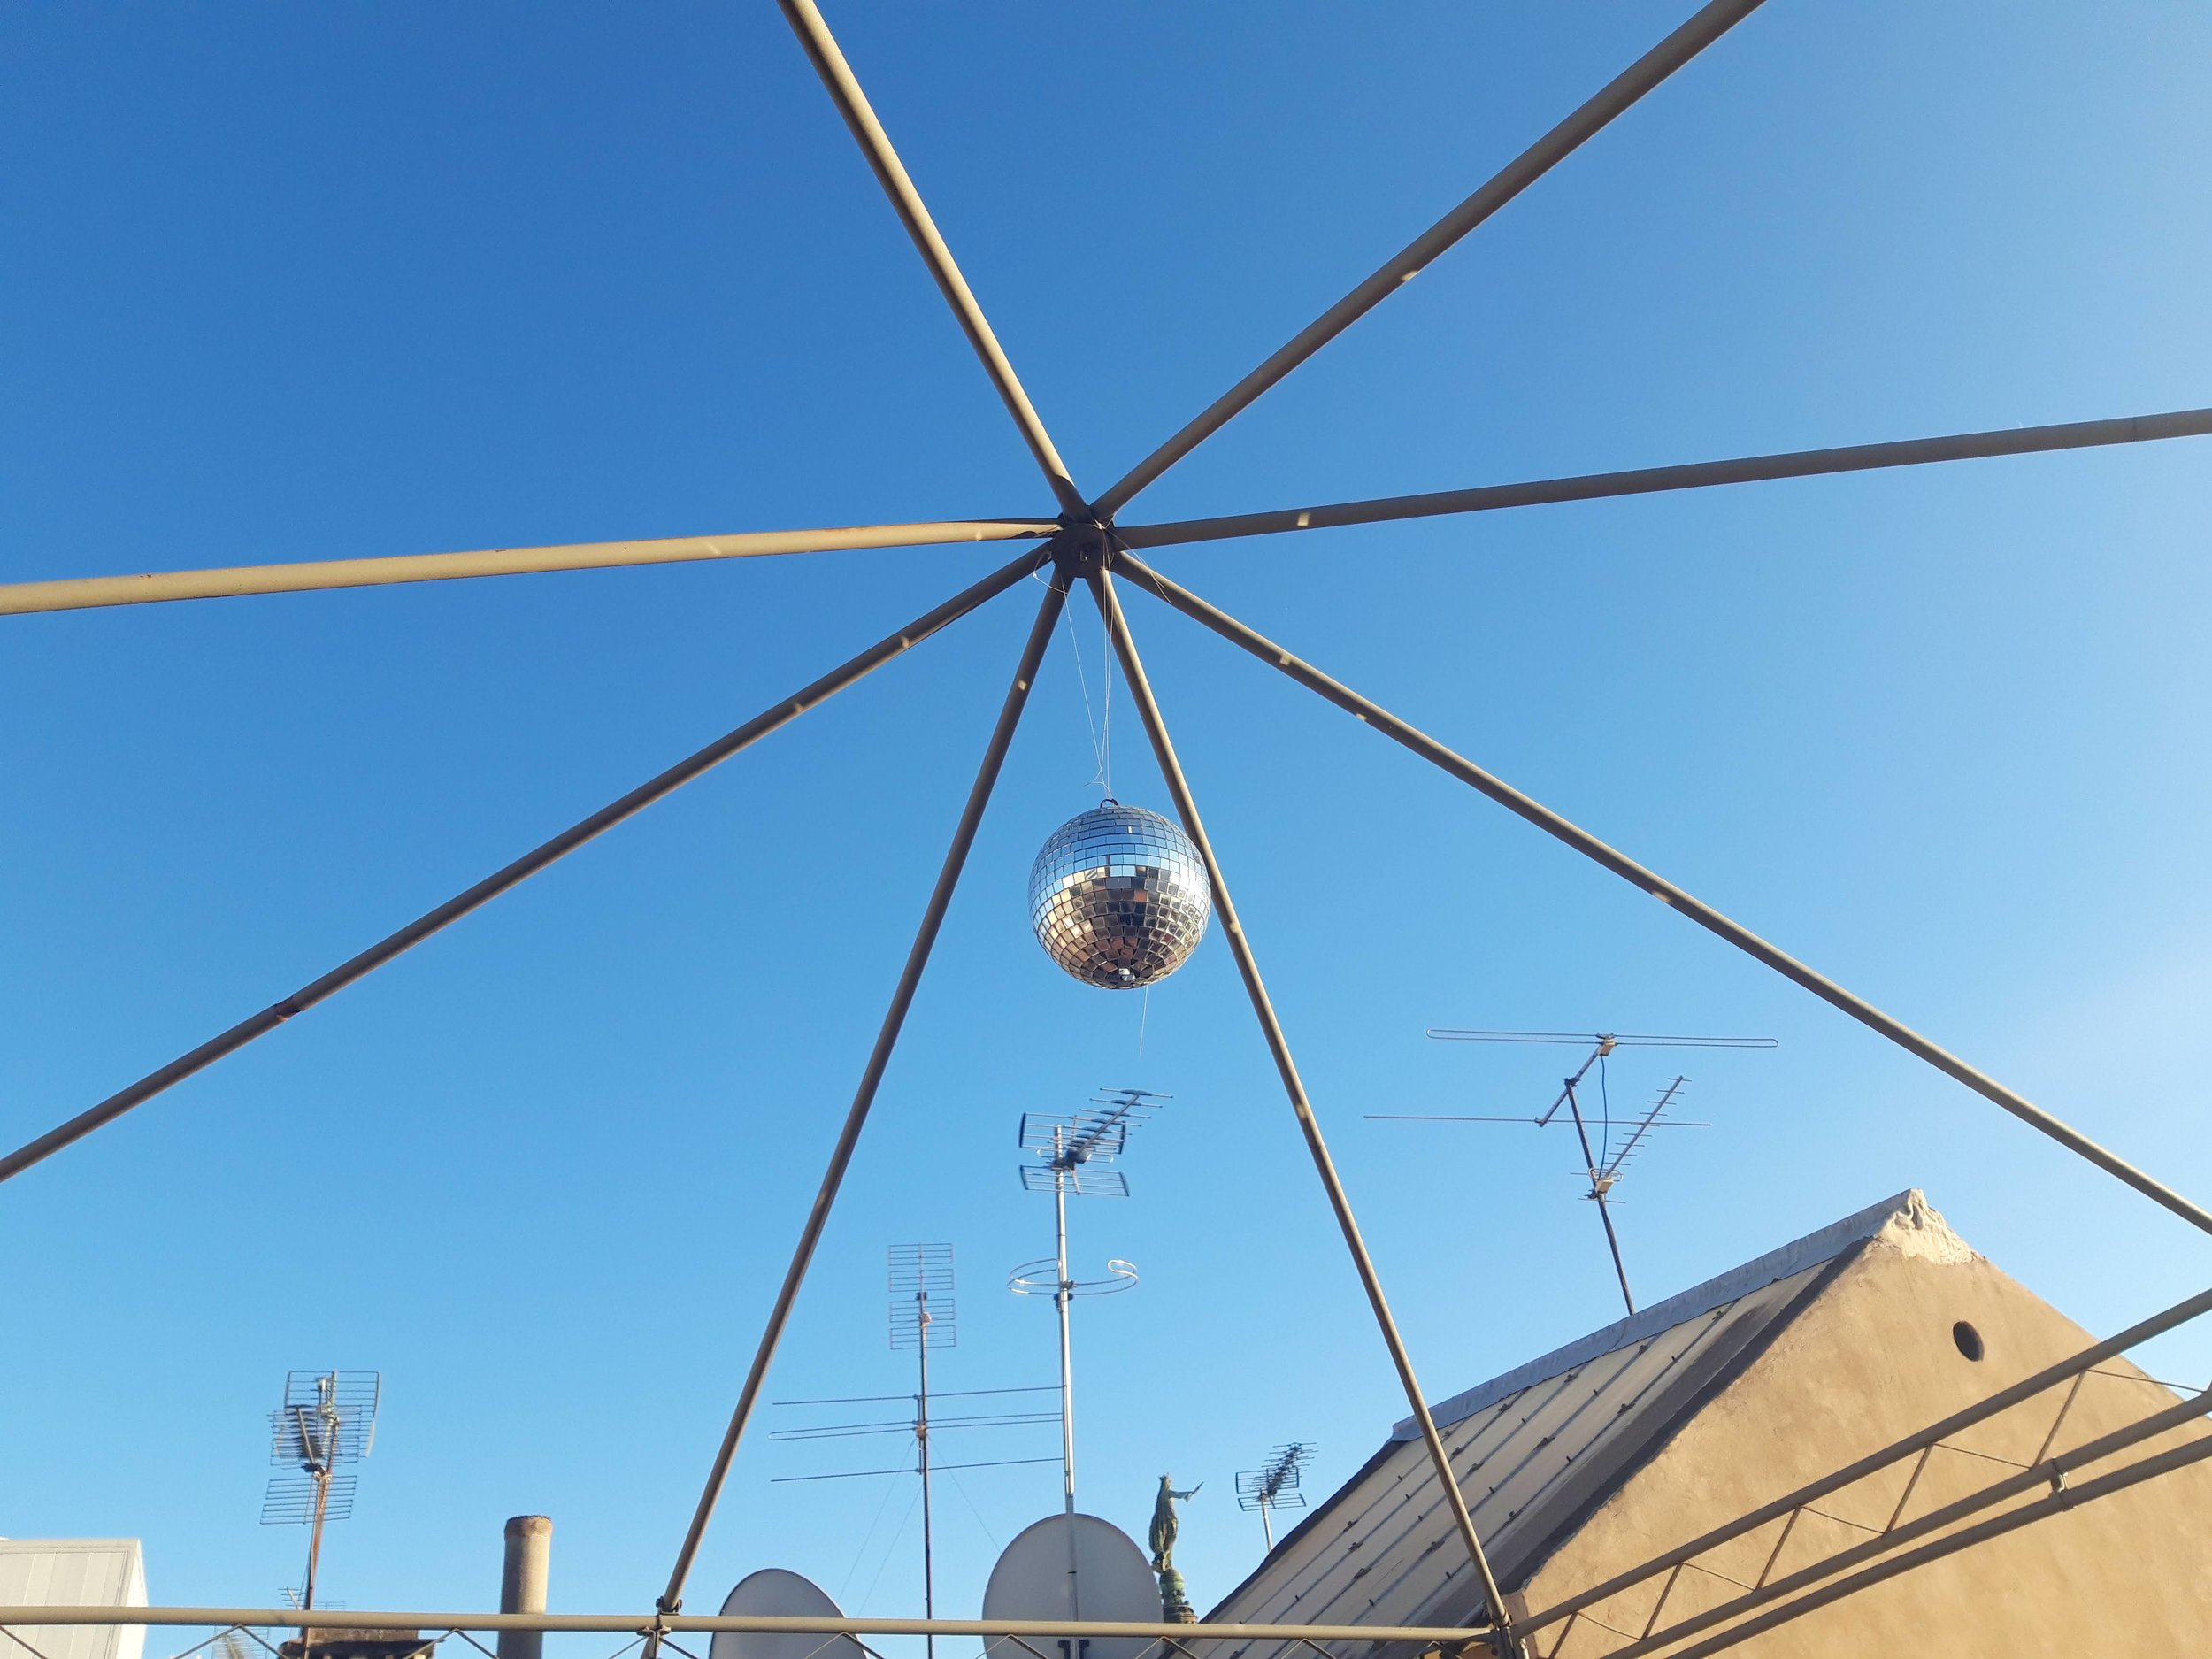 disco balls spinning from catalunyan rooftops, el gótico, barcelona, 10 January 2019